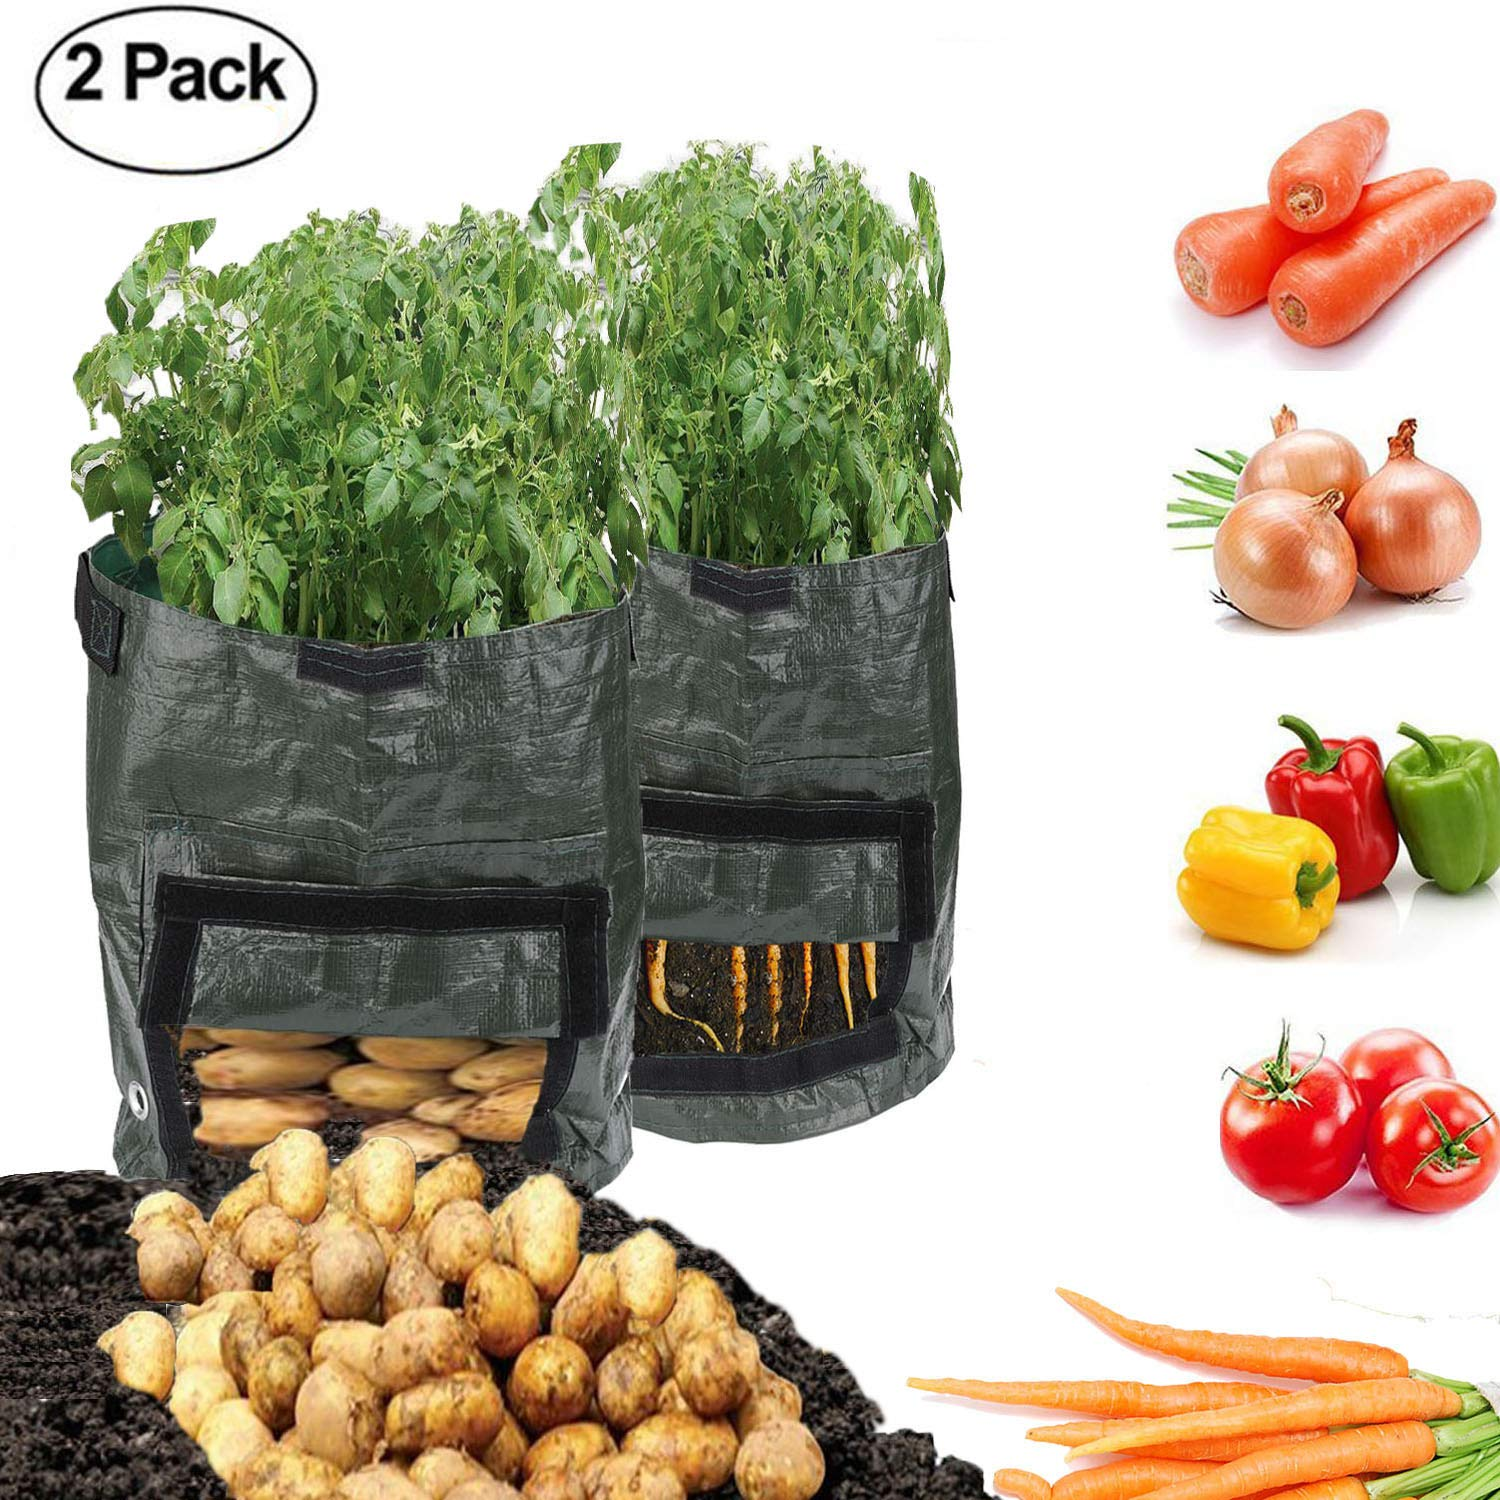 2Pack Garden Vegetables Planter Bags with Flap and Handles Heavy Duty Suitable for Potato, Carrot, Tomato, Onion and so on HIMM